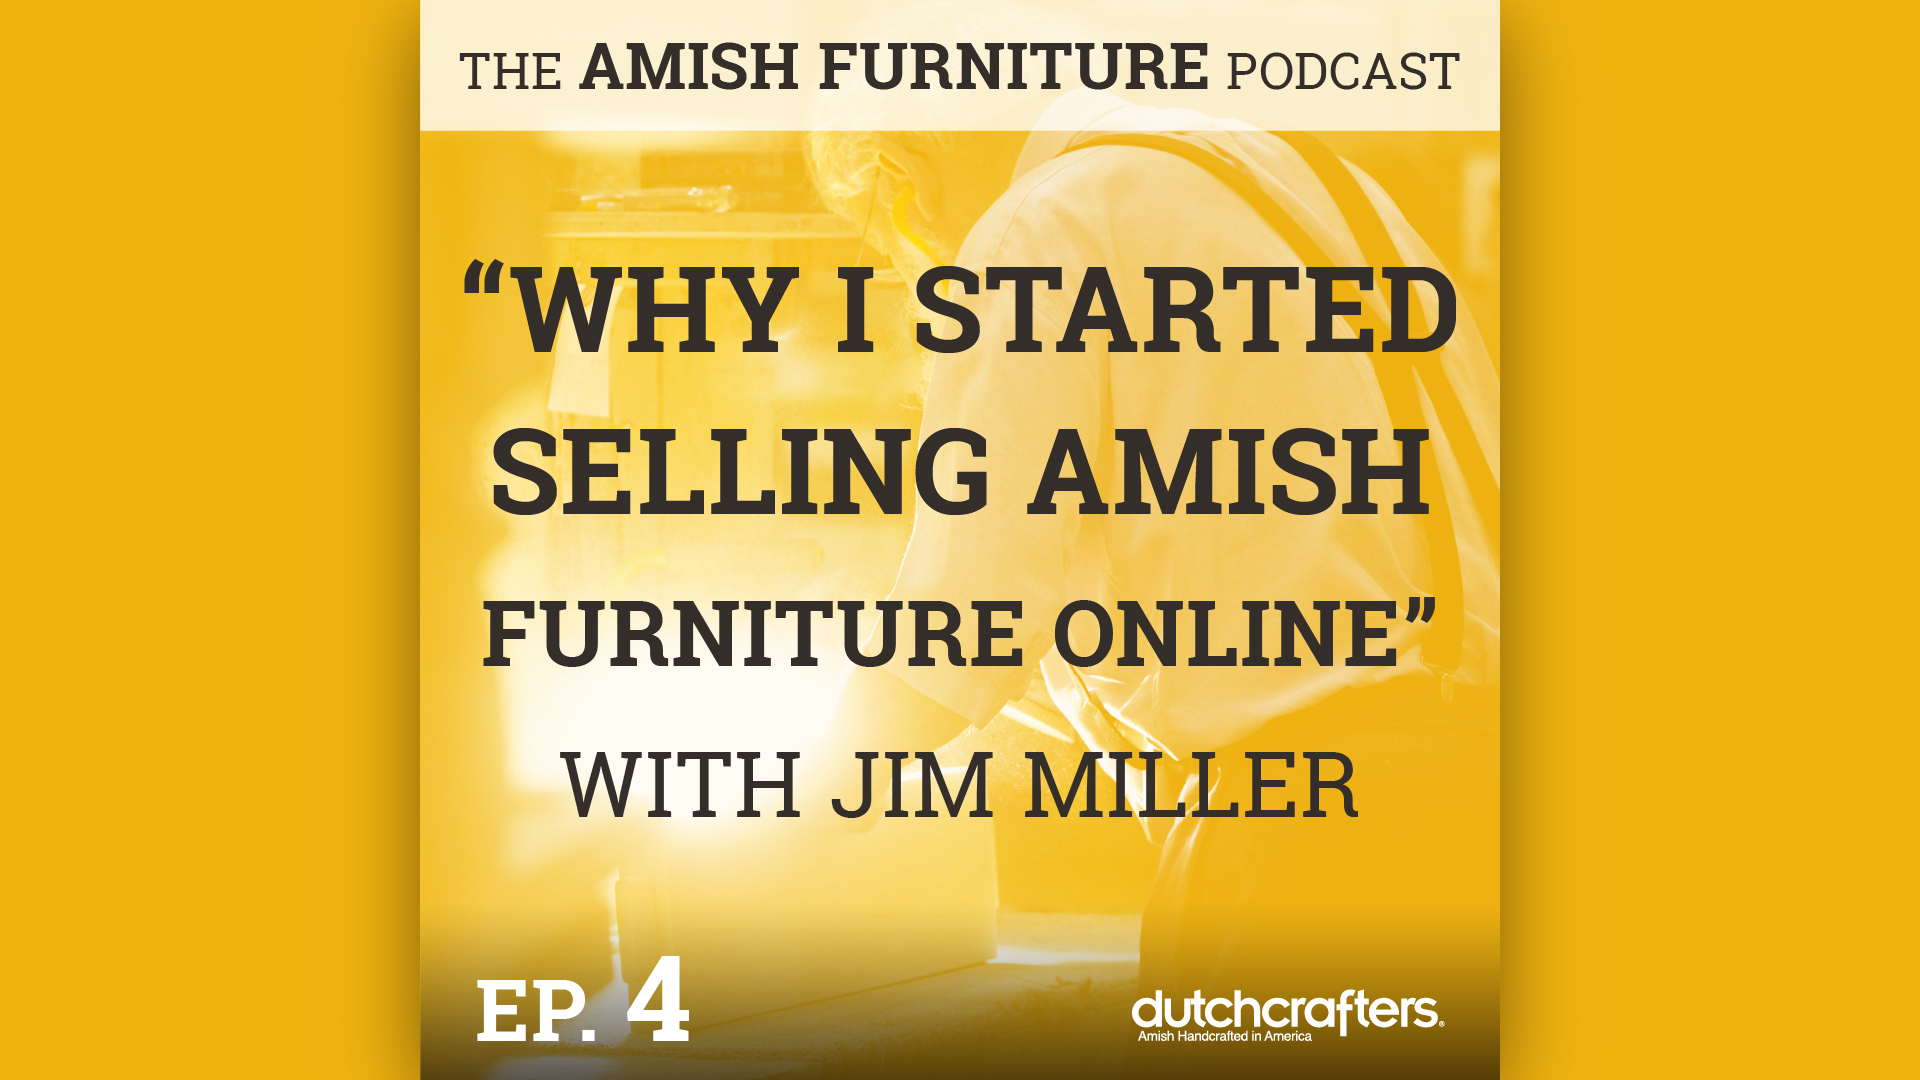 Why I Started Selling Amish Furniture Online with Jim Miller Podcast Title Screen